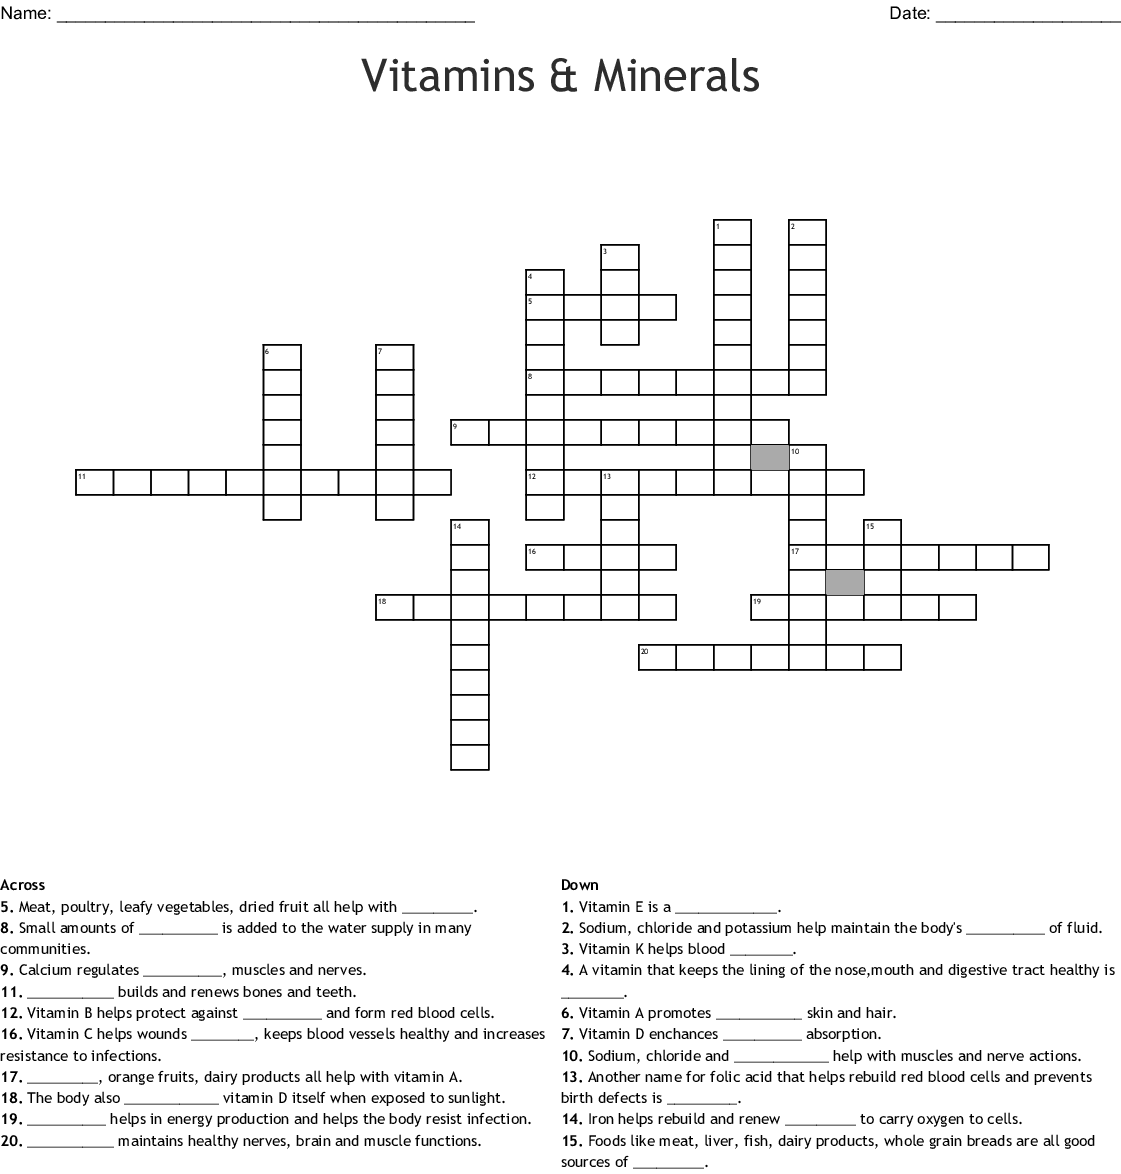 Vitamin C Word Search